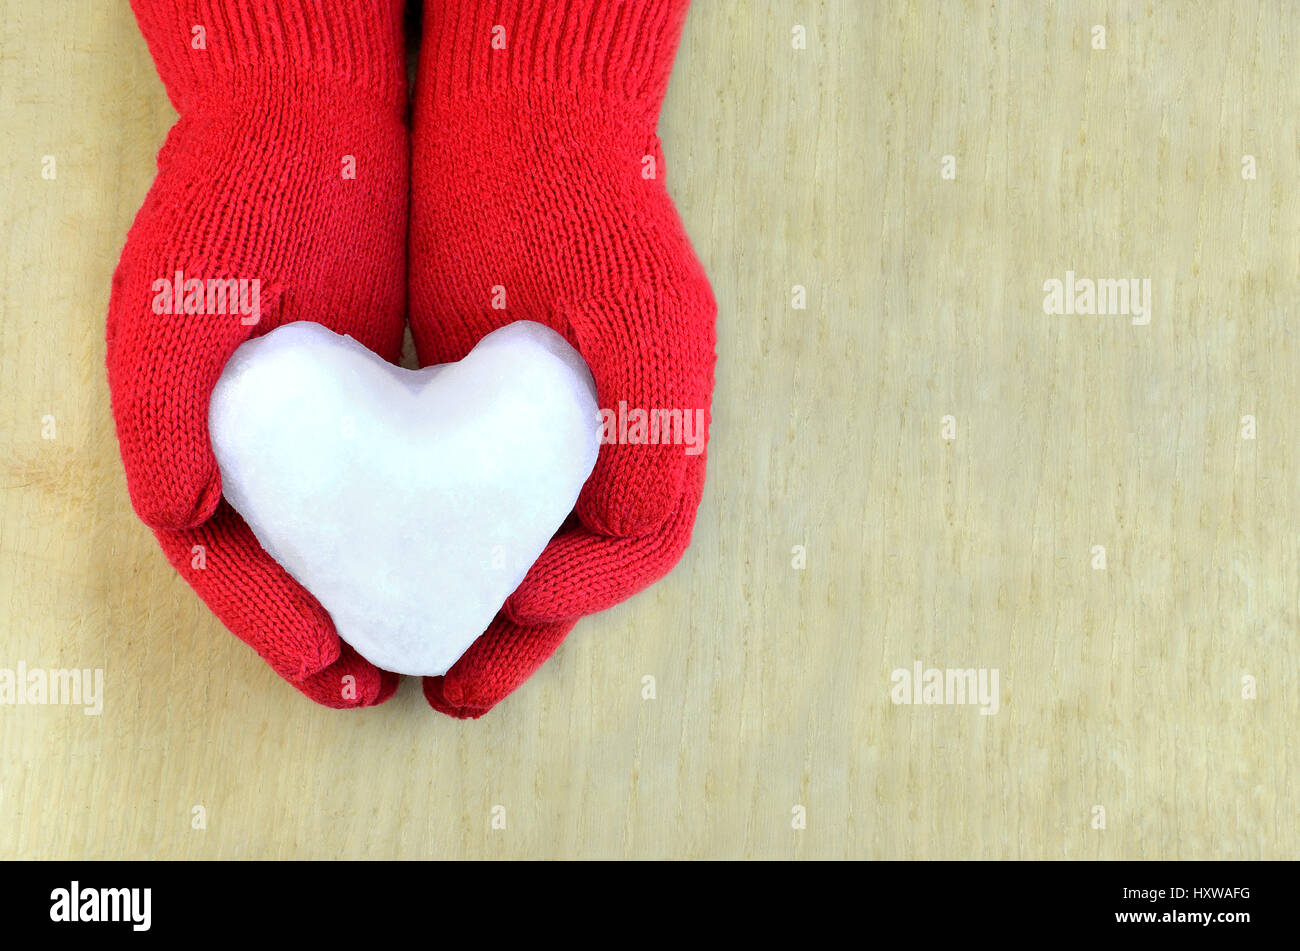 Snow heart in red gloves on wooden surface - Stock Image